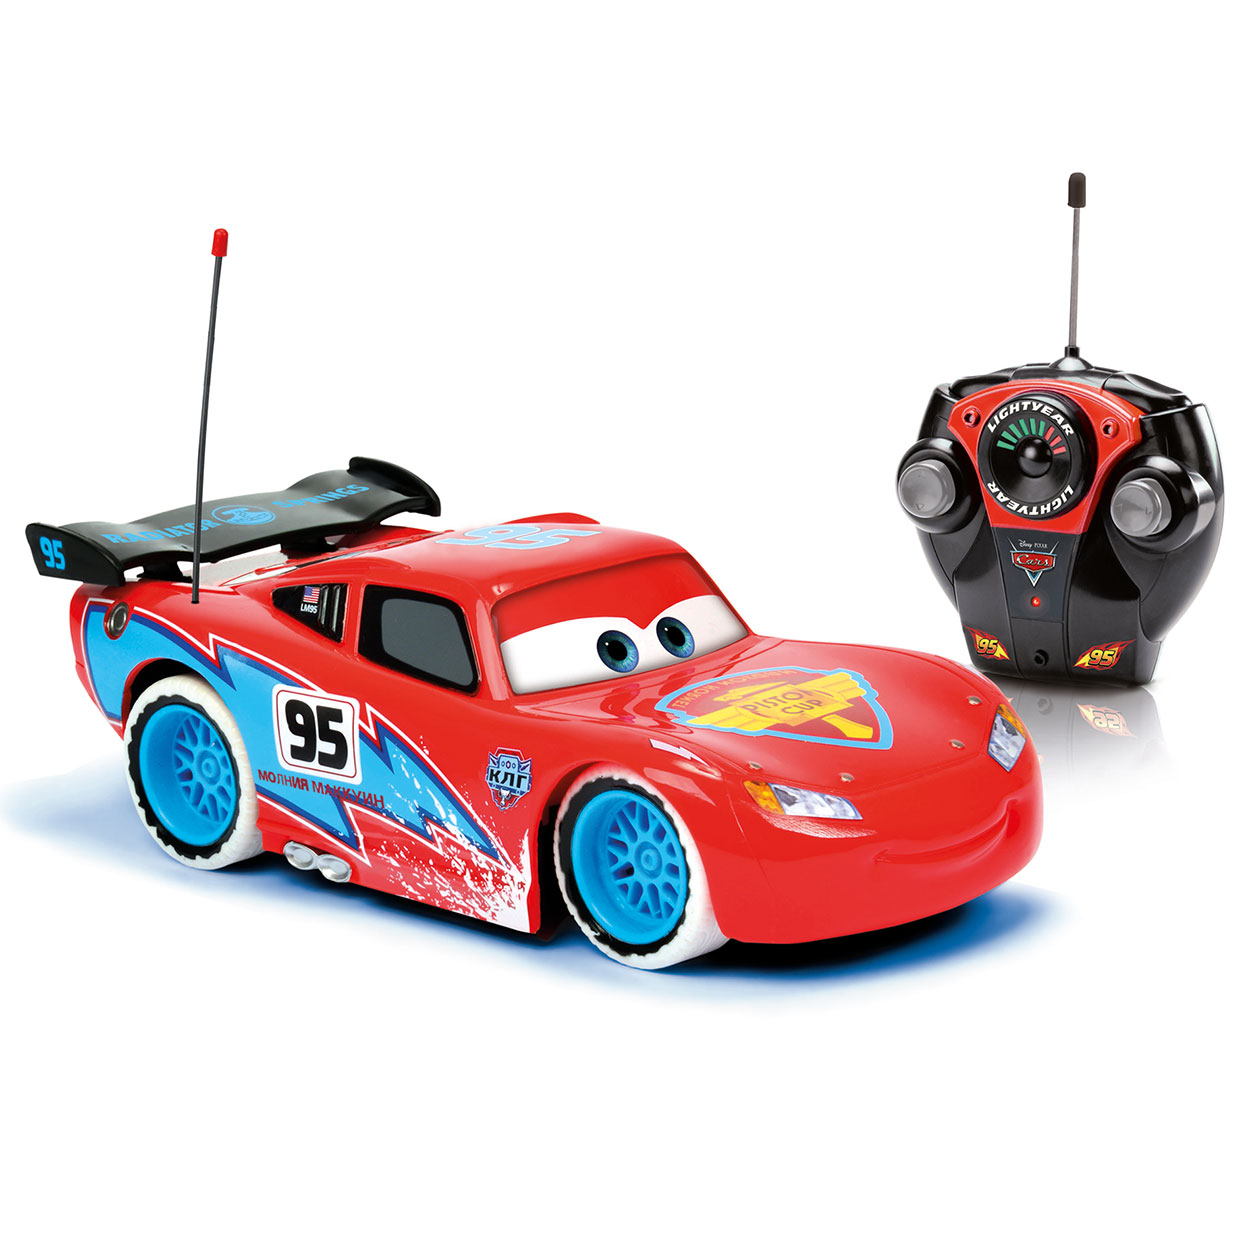 Rc Ice Racing Cars Lightning Mcqueen Online Kopen Lobbes Nl